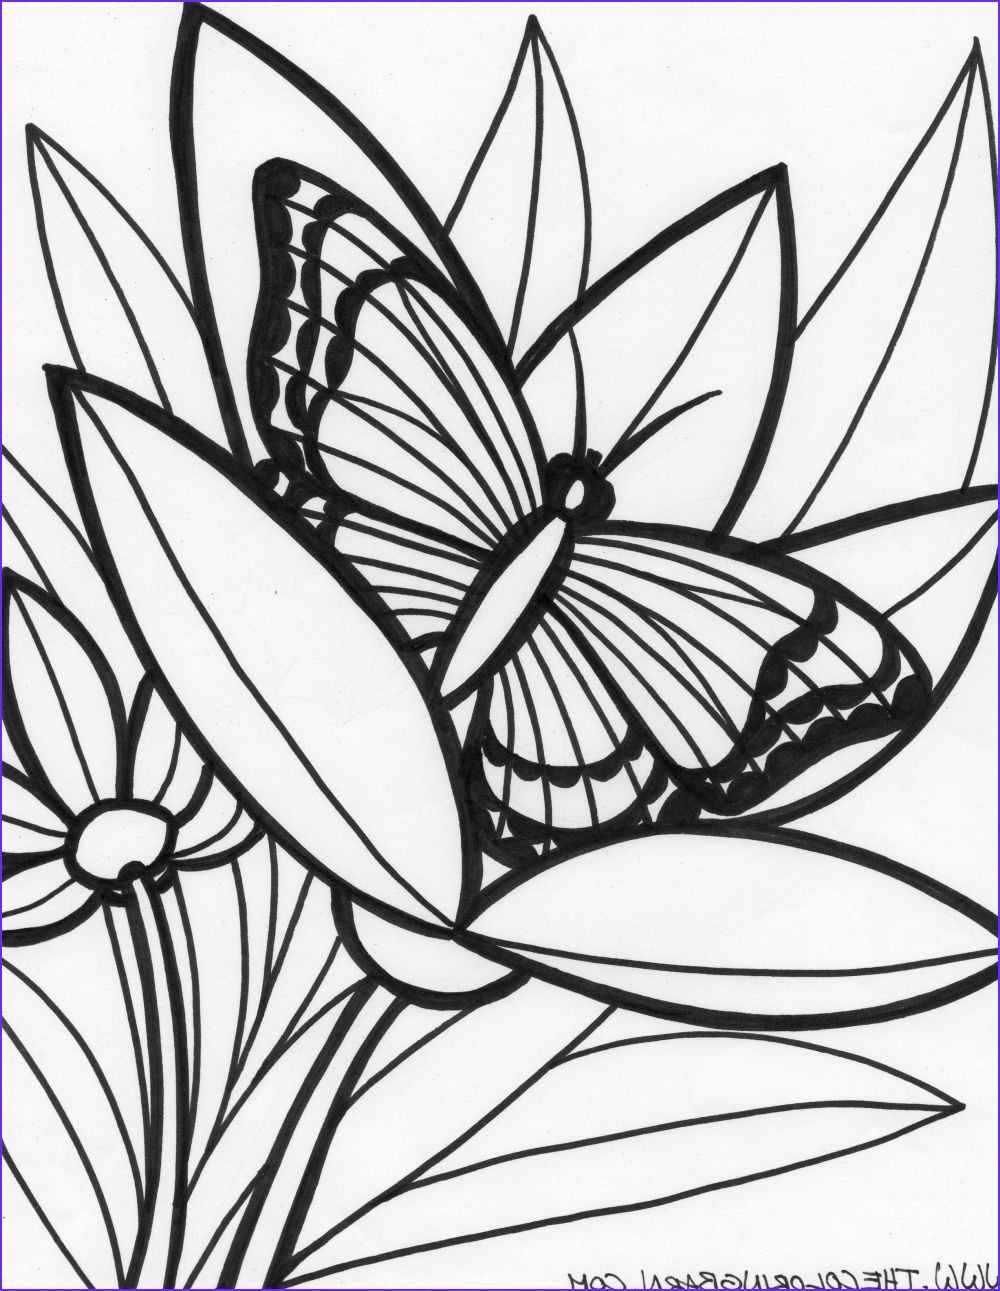 15 Beautiful Rainforest Animal Coloring Page Image Jungle Coloring Pages Animal Coloring Pages Rainforest Animals [ 1291 x 1000 Pixel ]